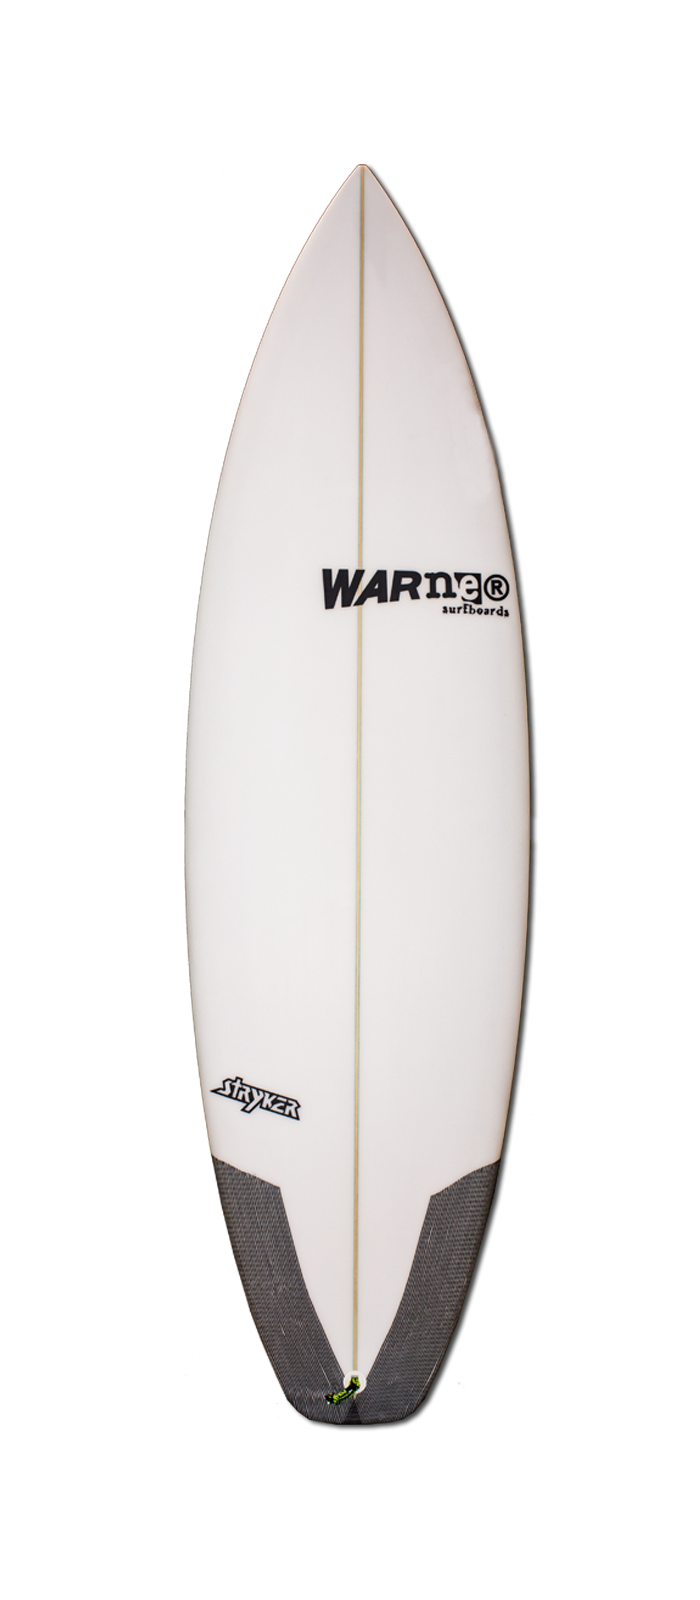 STRYKER surfboard model